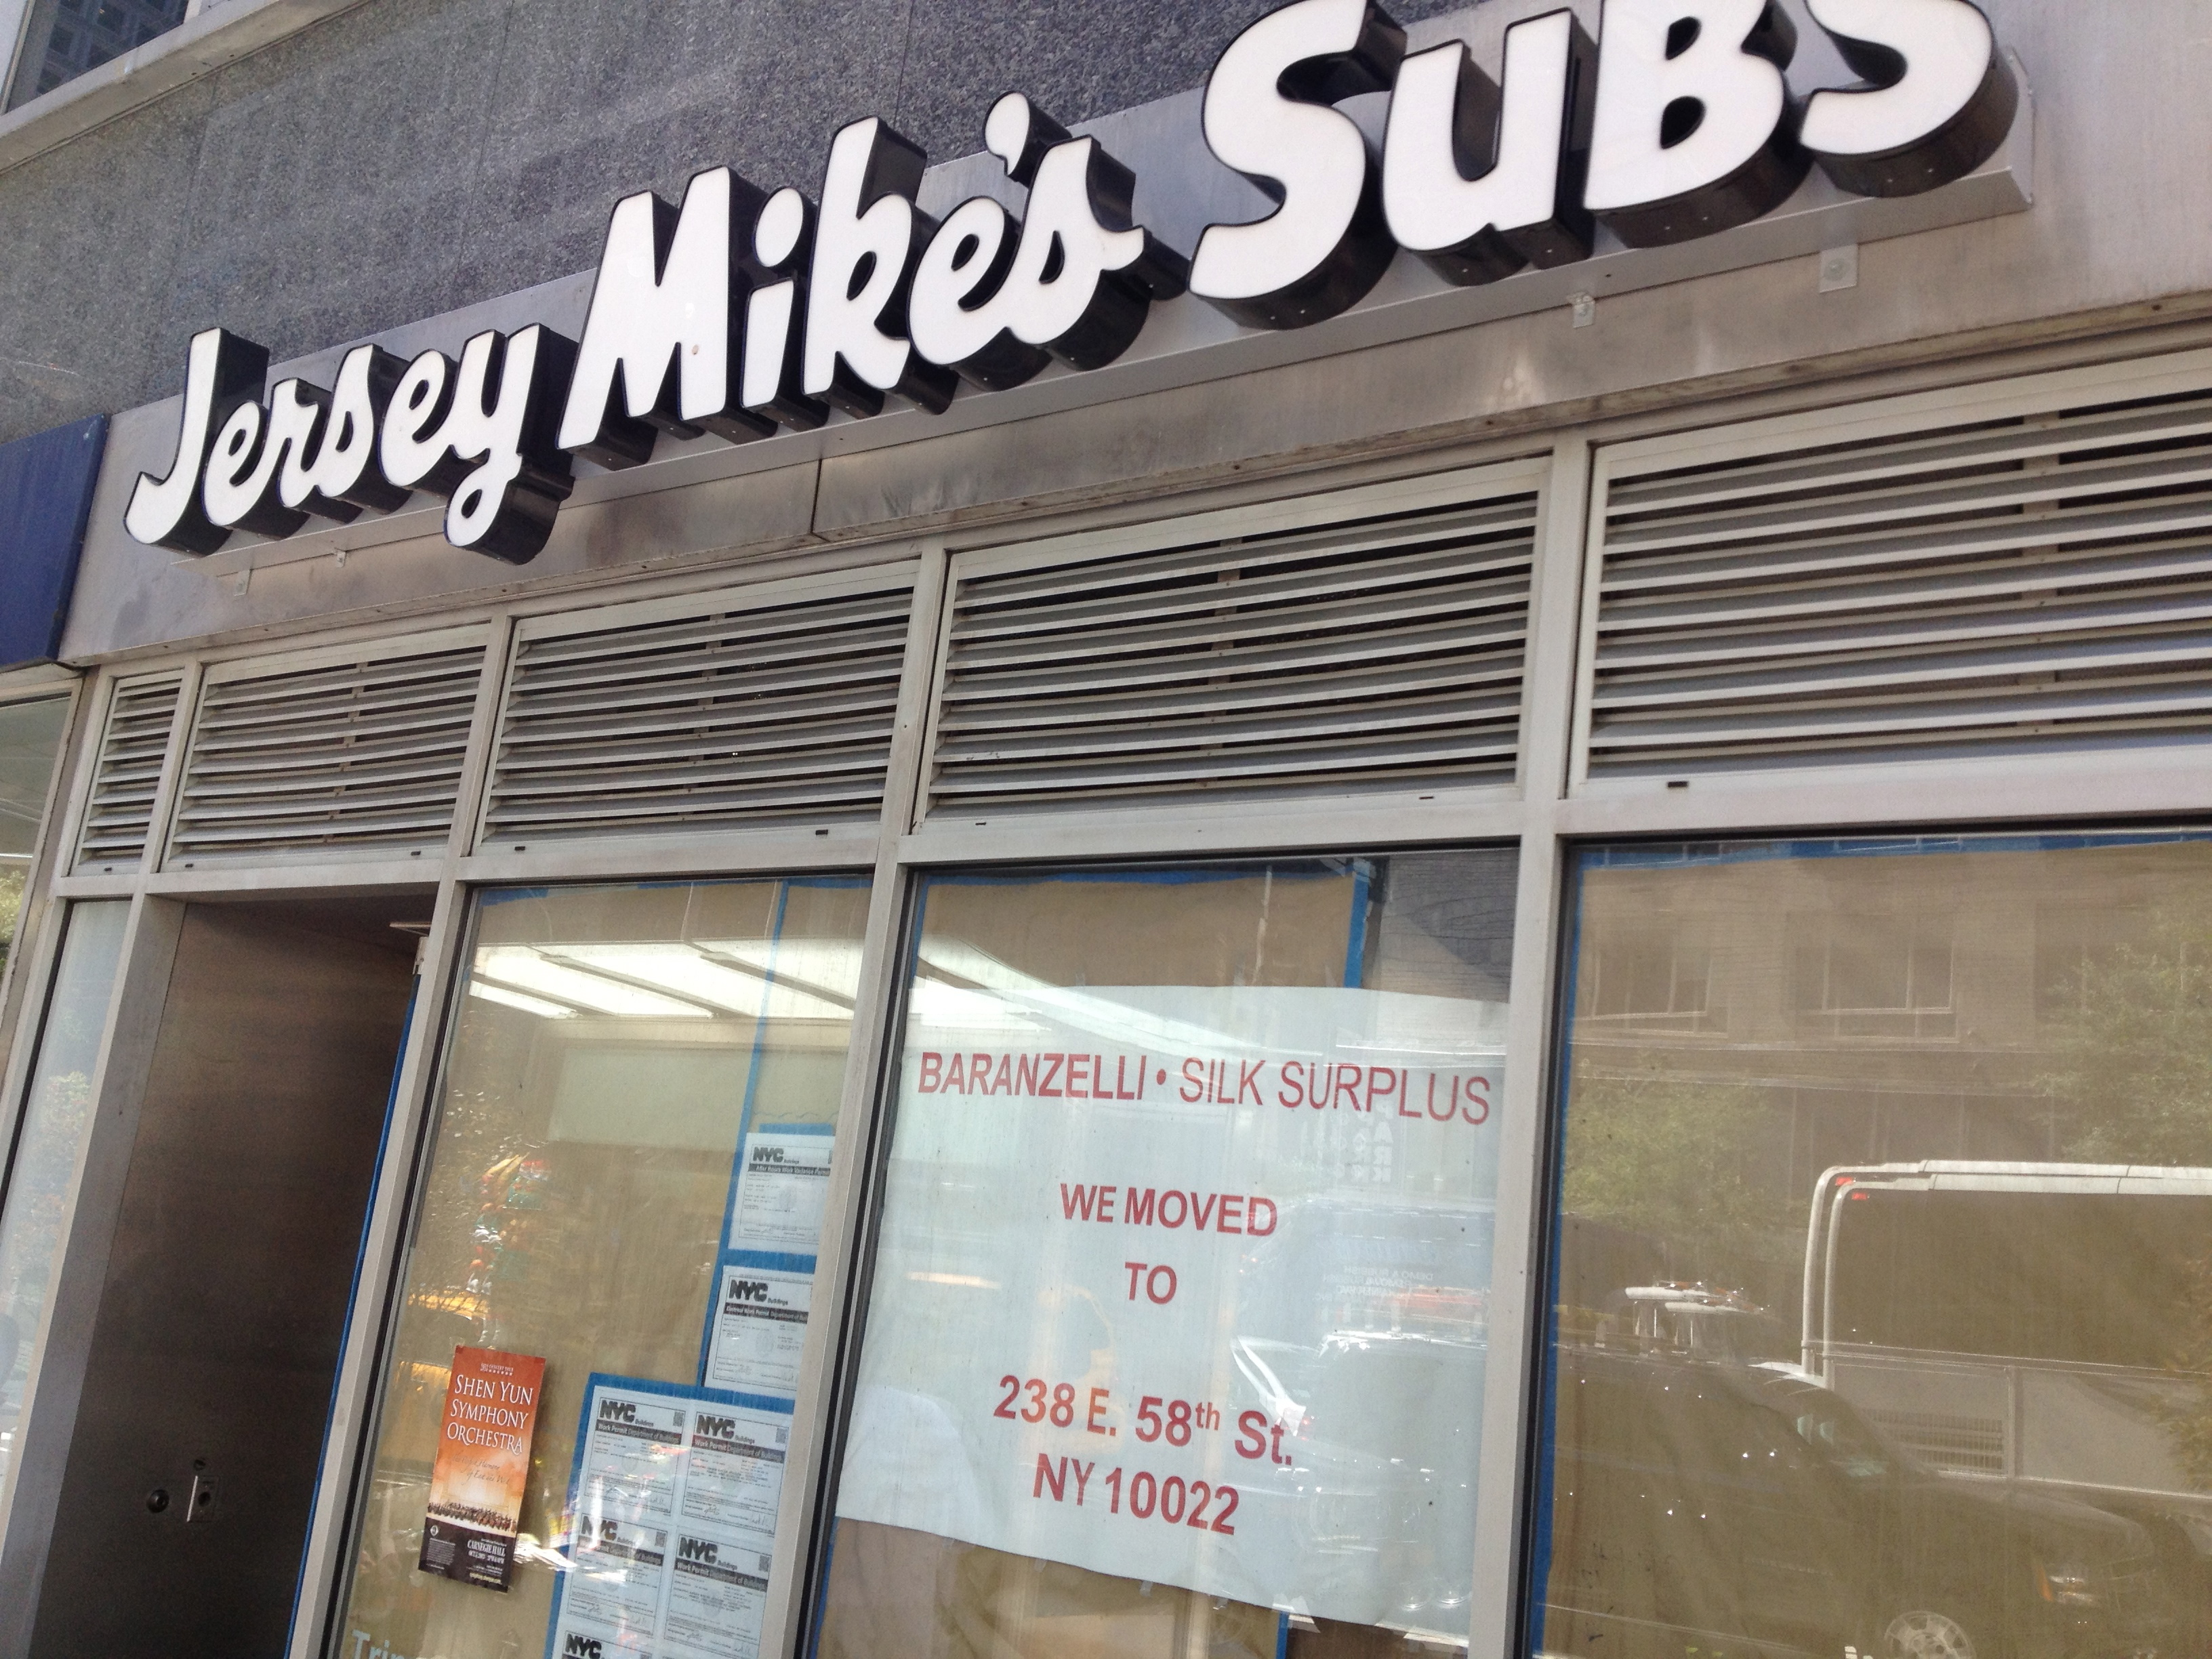 Jersey mikes super sub sweepstakes 2018